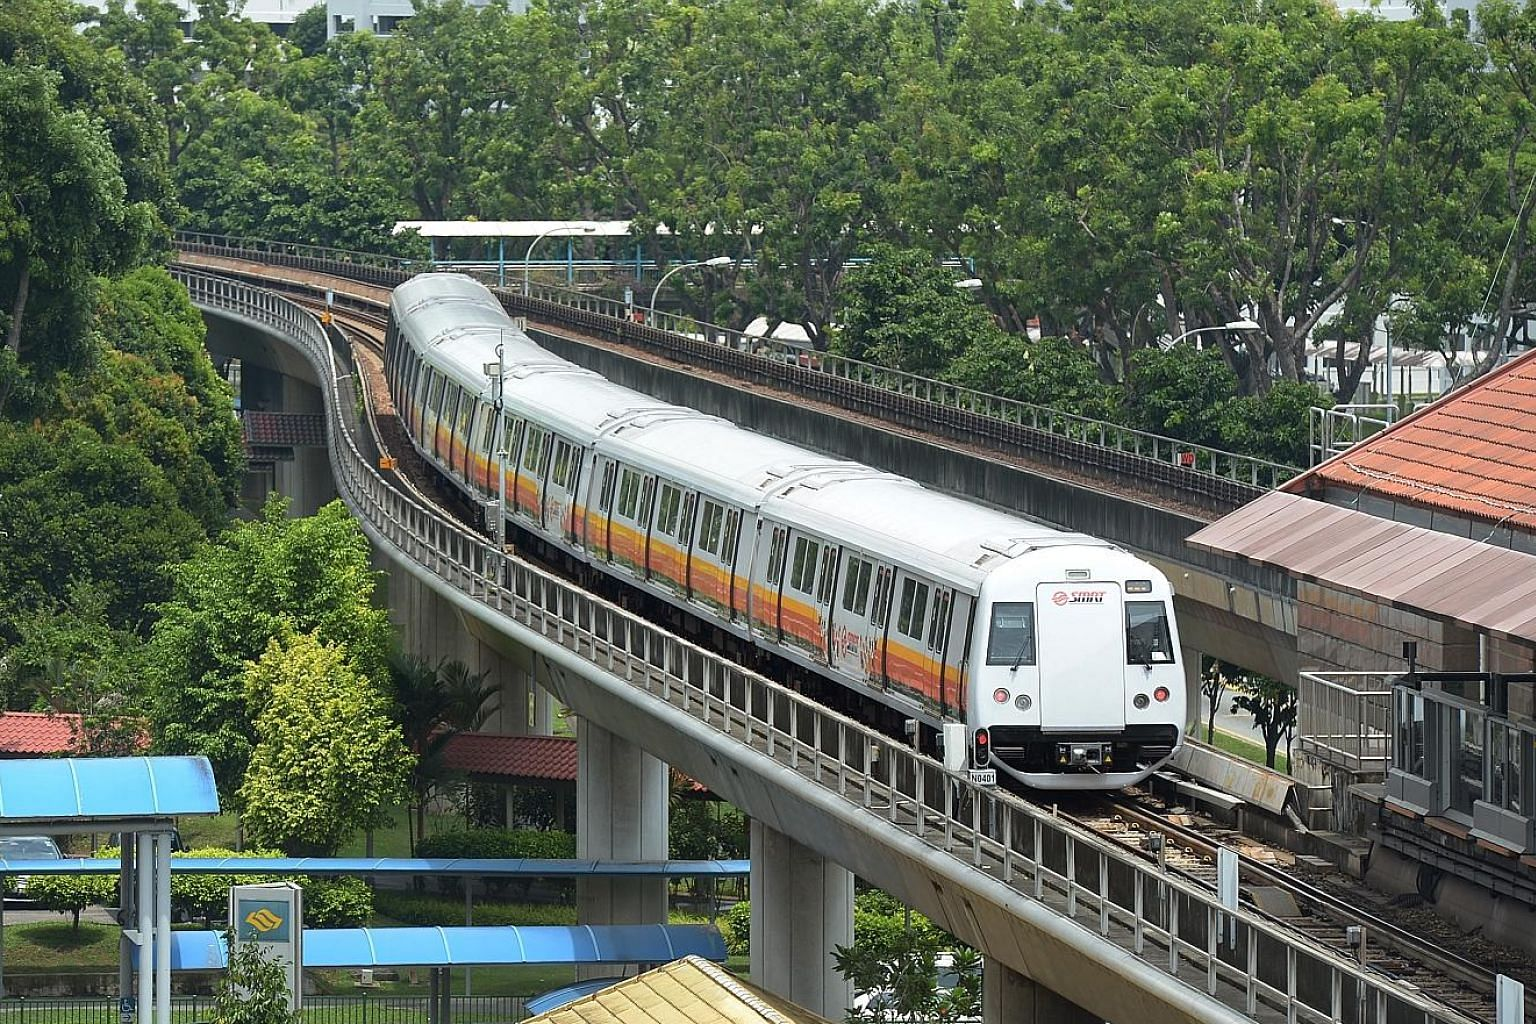 SMRT CEO Desmond Kuek, who has helmed SMRT from October 2012, will leave the organisation in about three months' time, ST understands.